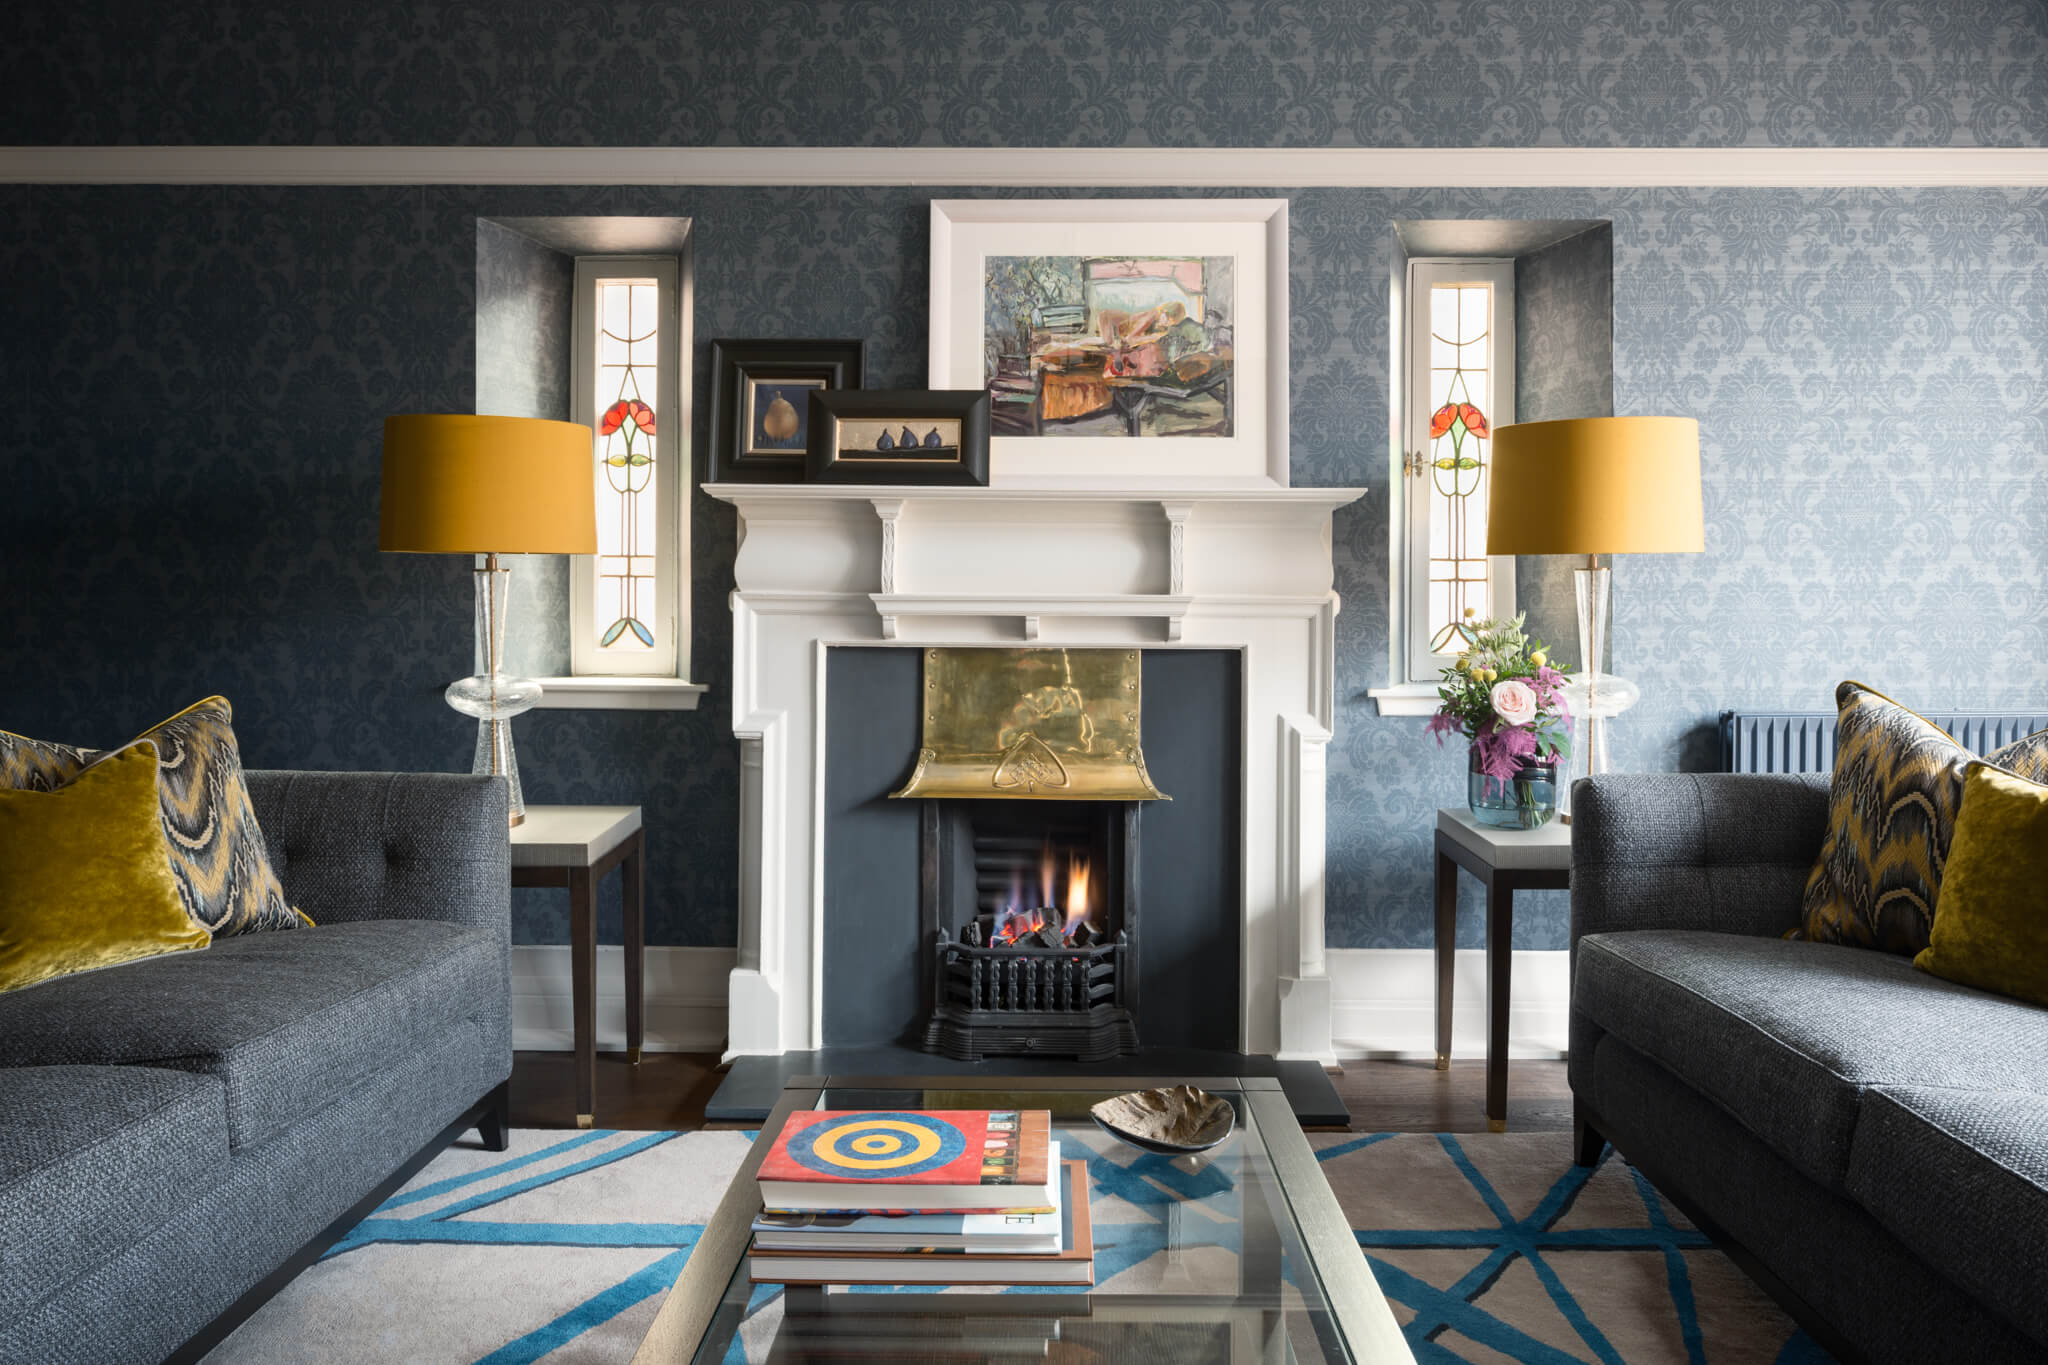 Print-Drawing-Room-Onepoint-Fireplace-Chelsea-Mclaine-Interiors-Introductory-Shoot-©ZACandZAC